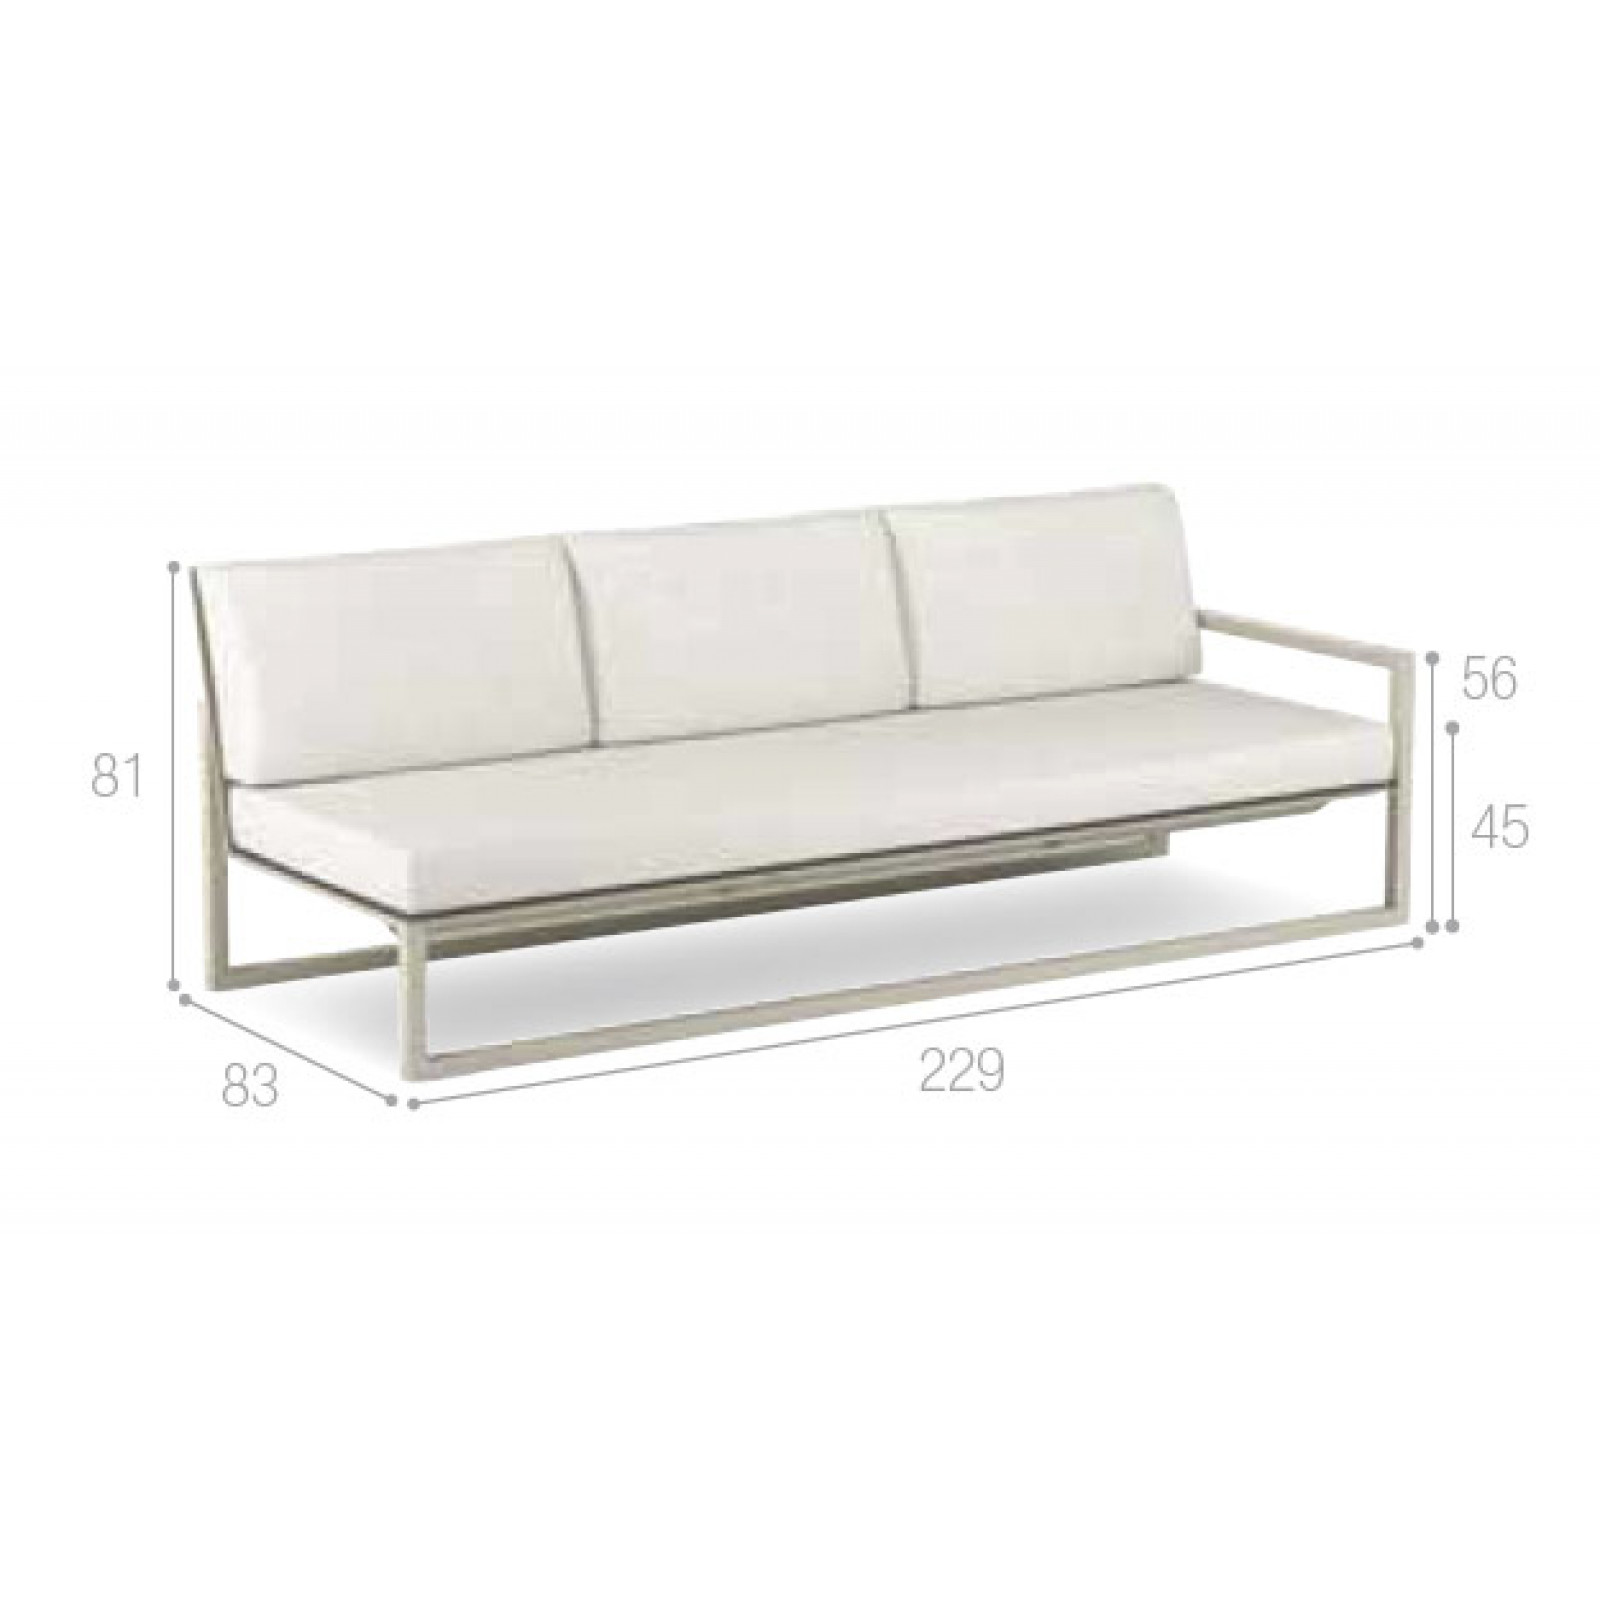 Royal Botania Ninix Lounge Modul 229 cm links